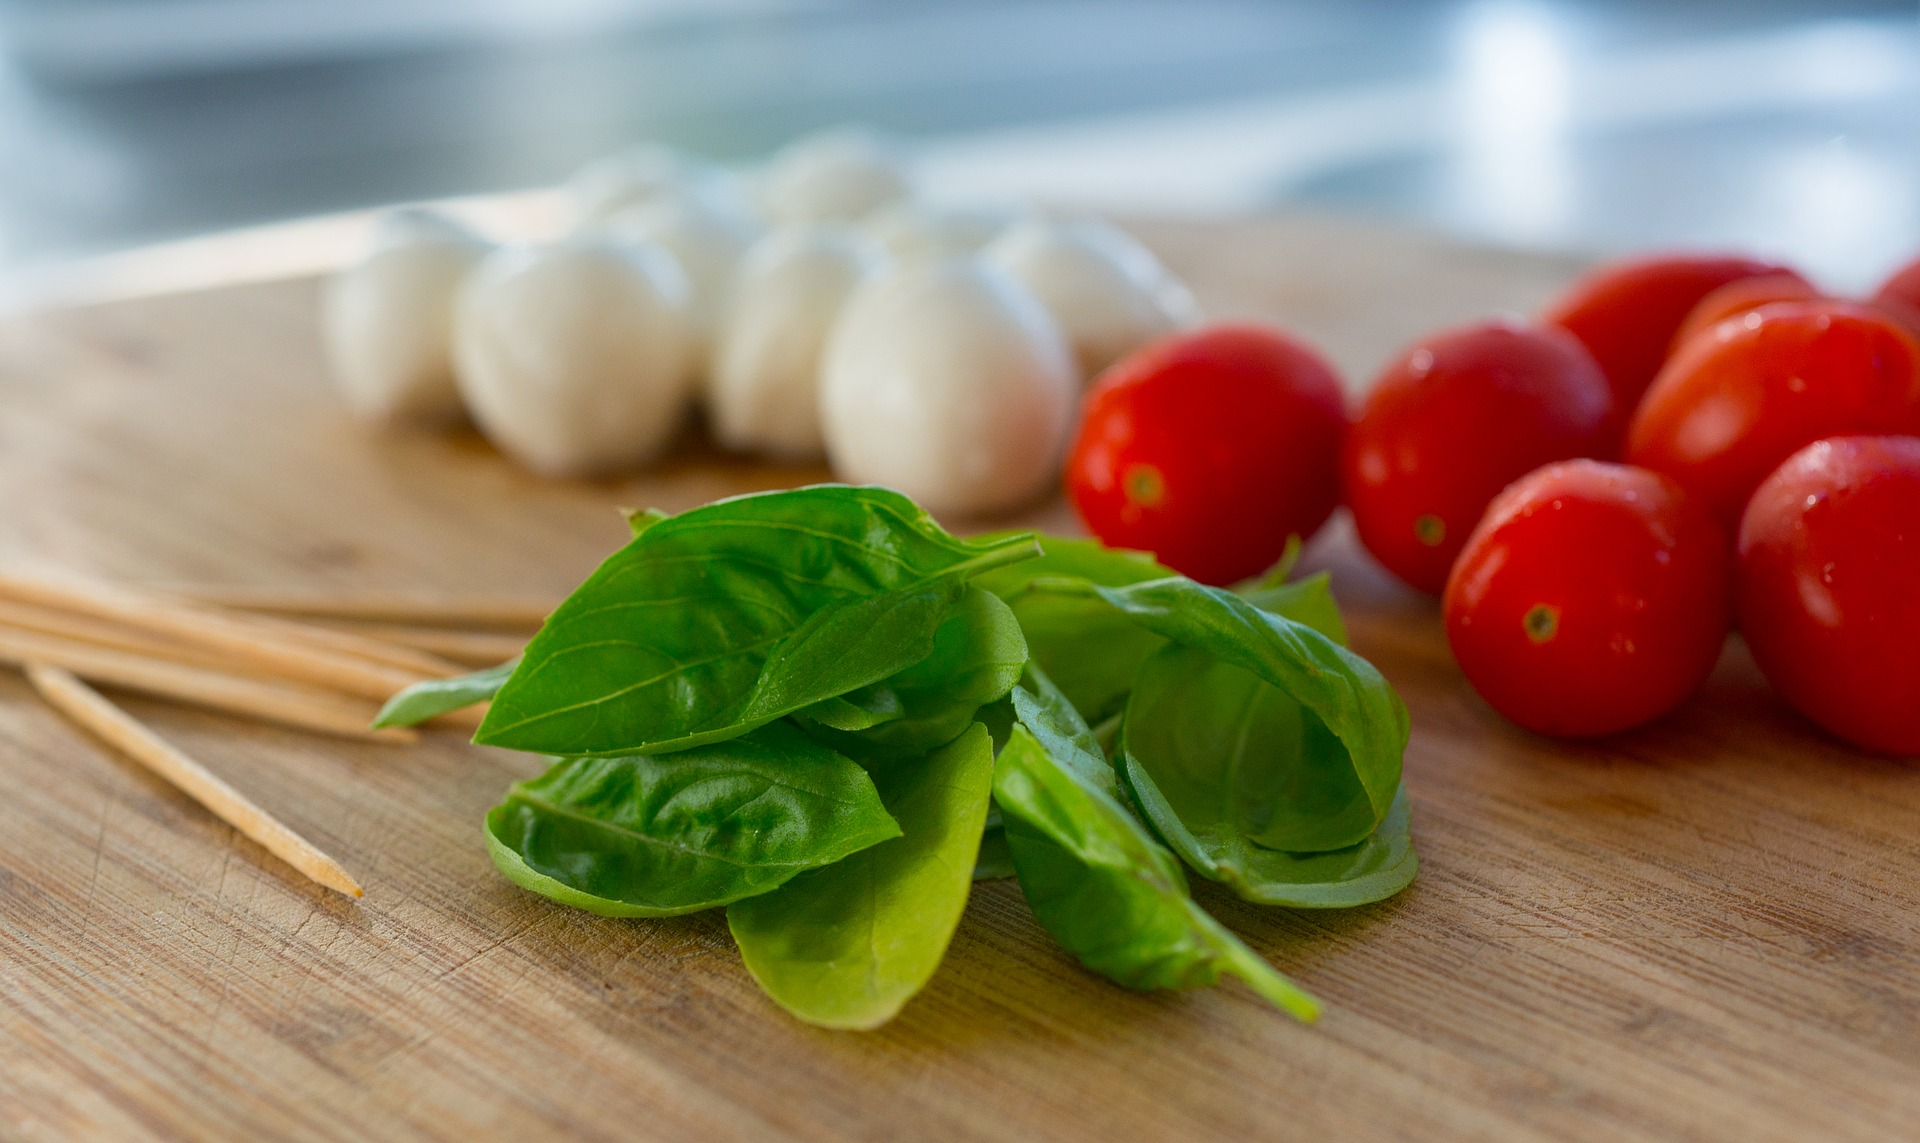 Caprese ingredients: mozzarella, tomato, and basil